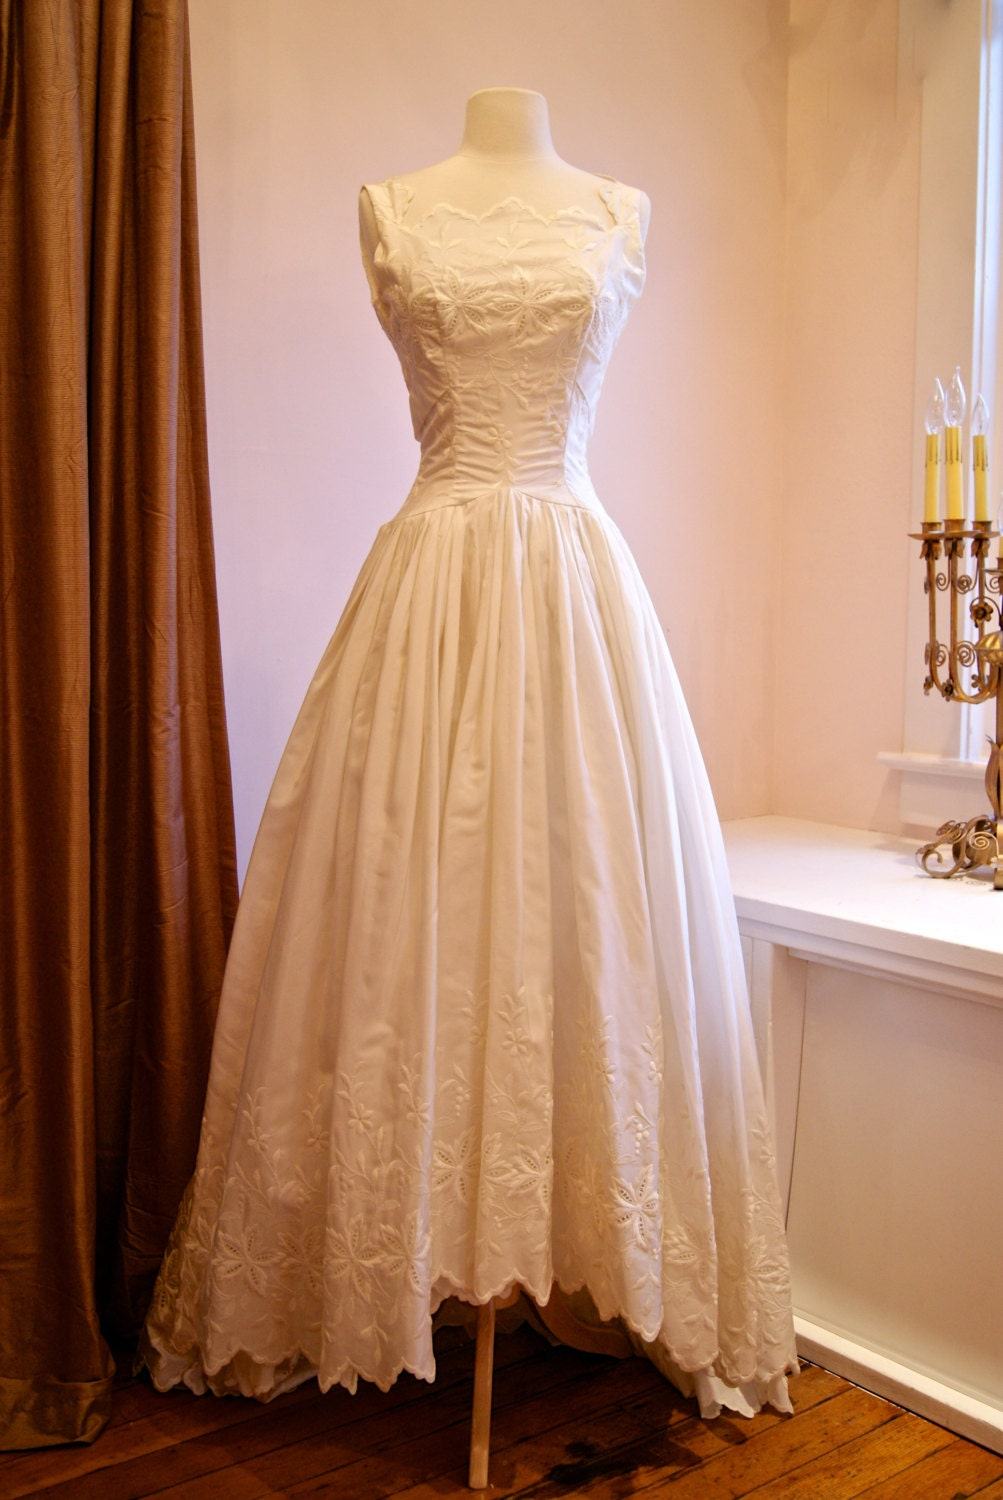 Vintage Wedding Dress 1950s Lace Wedding Gown With Eyelet